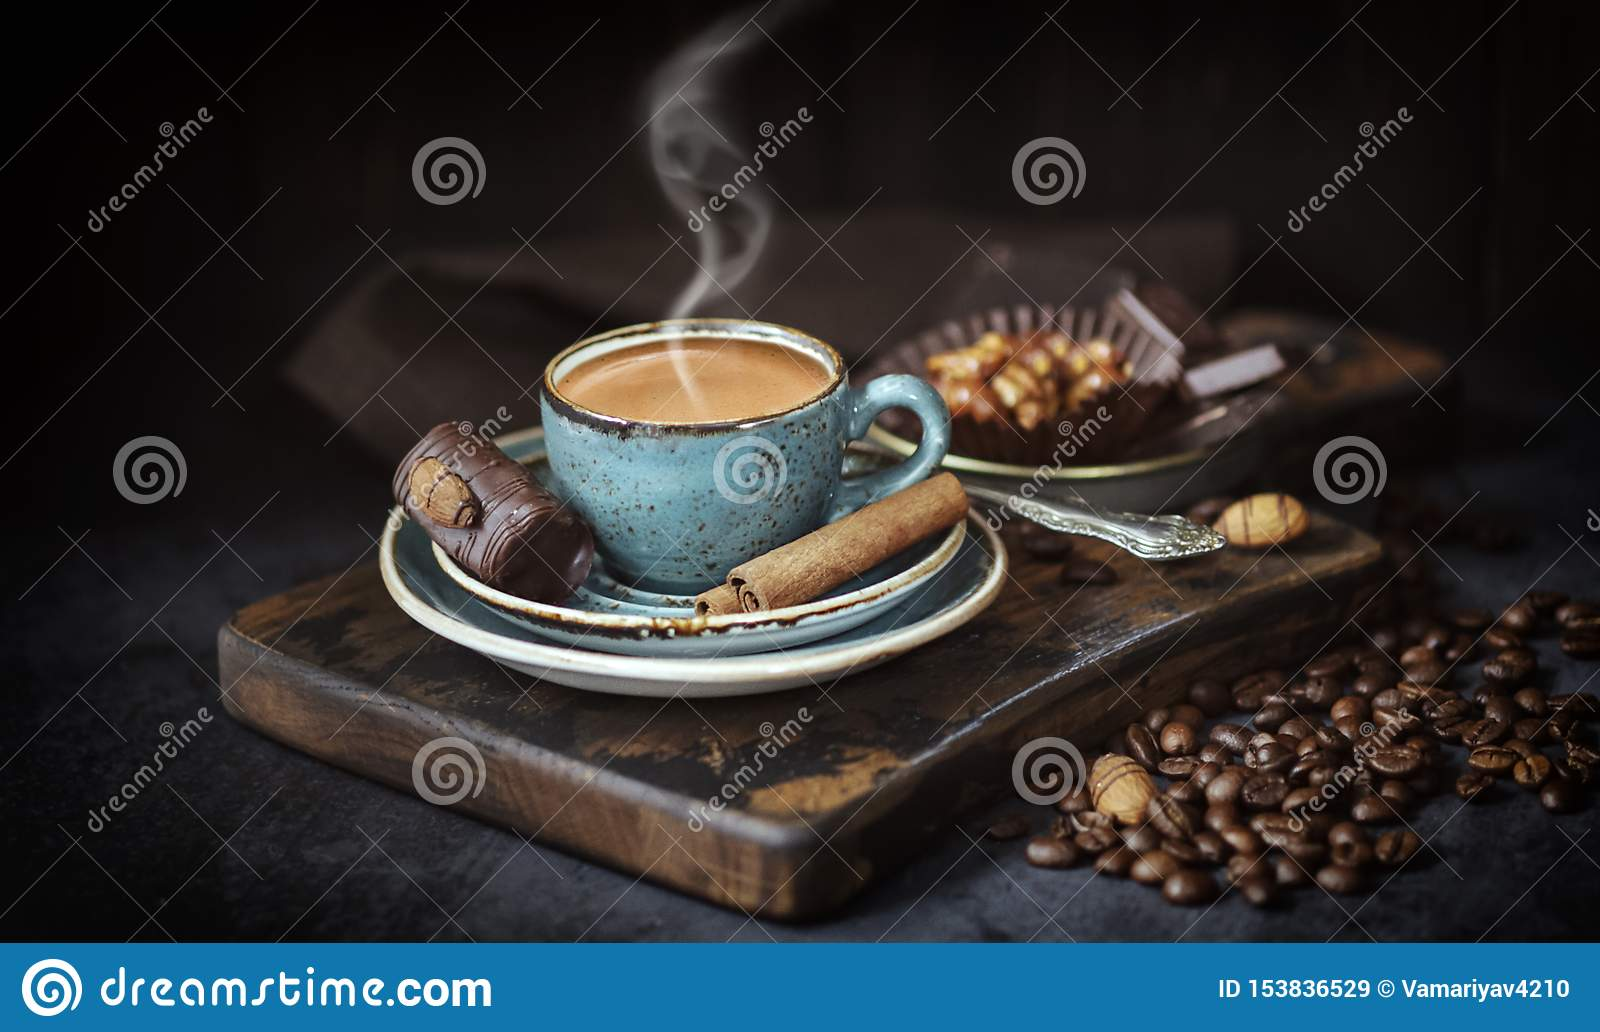 Coffee Cup on rustic background. Espresso with cinnamon sticks , blue Cup of coffee and coffee beans on an old Board, rustic, dark